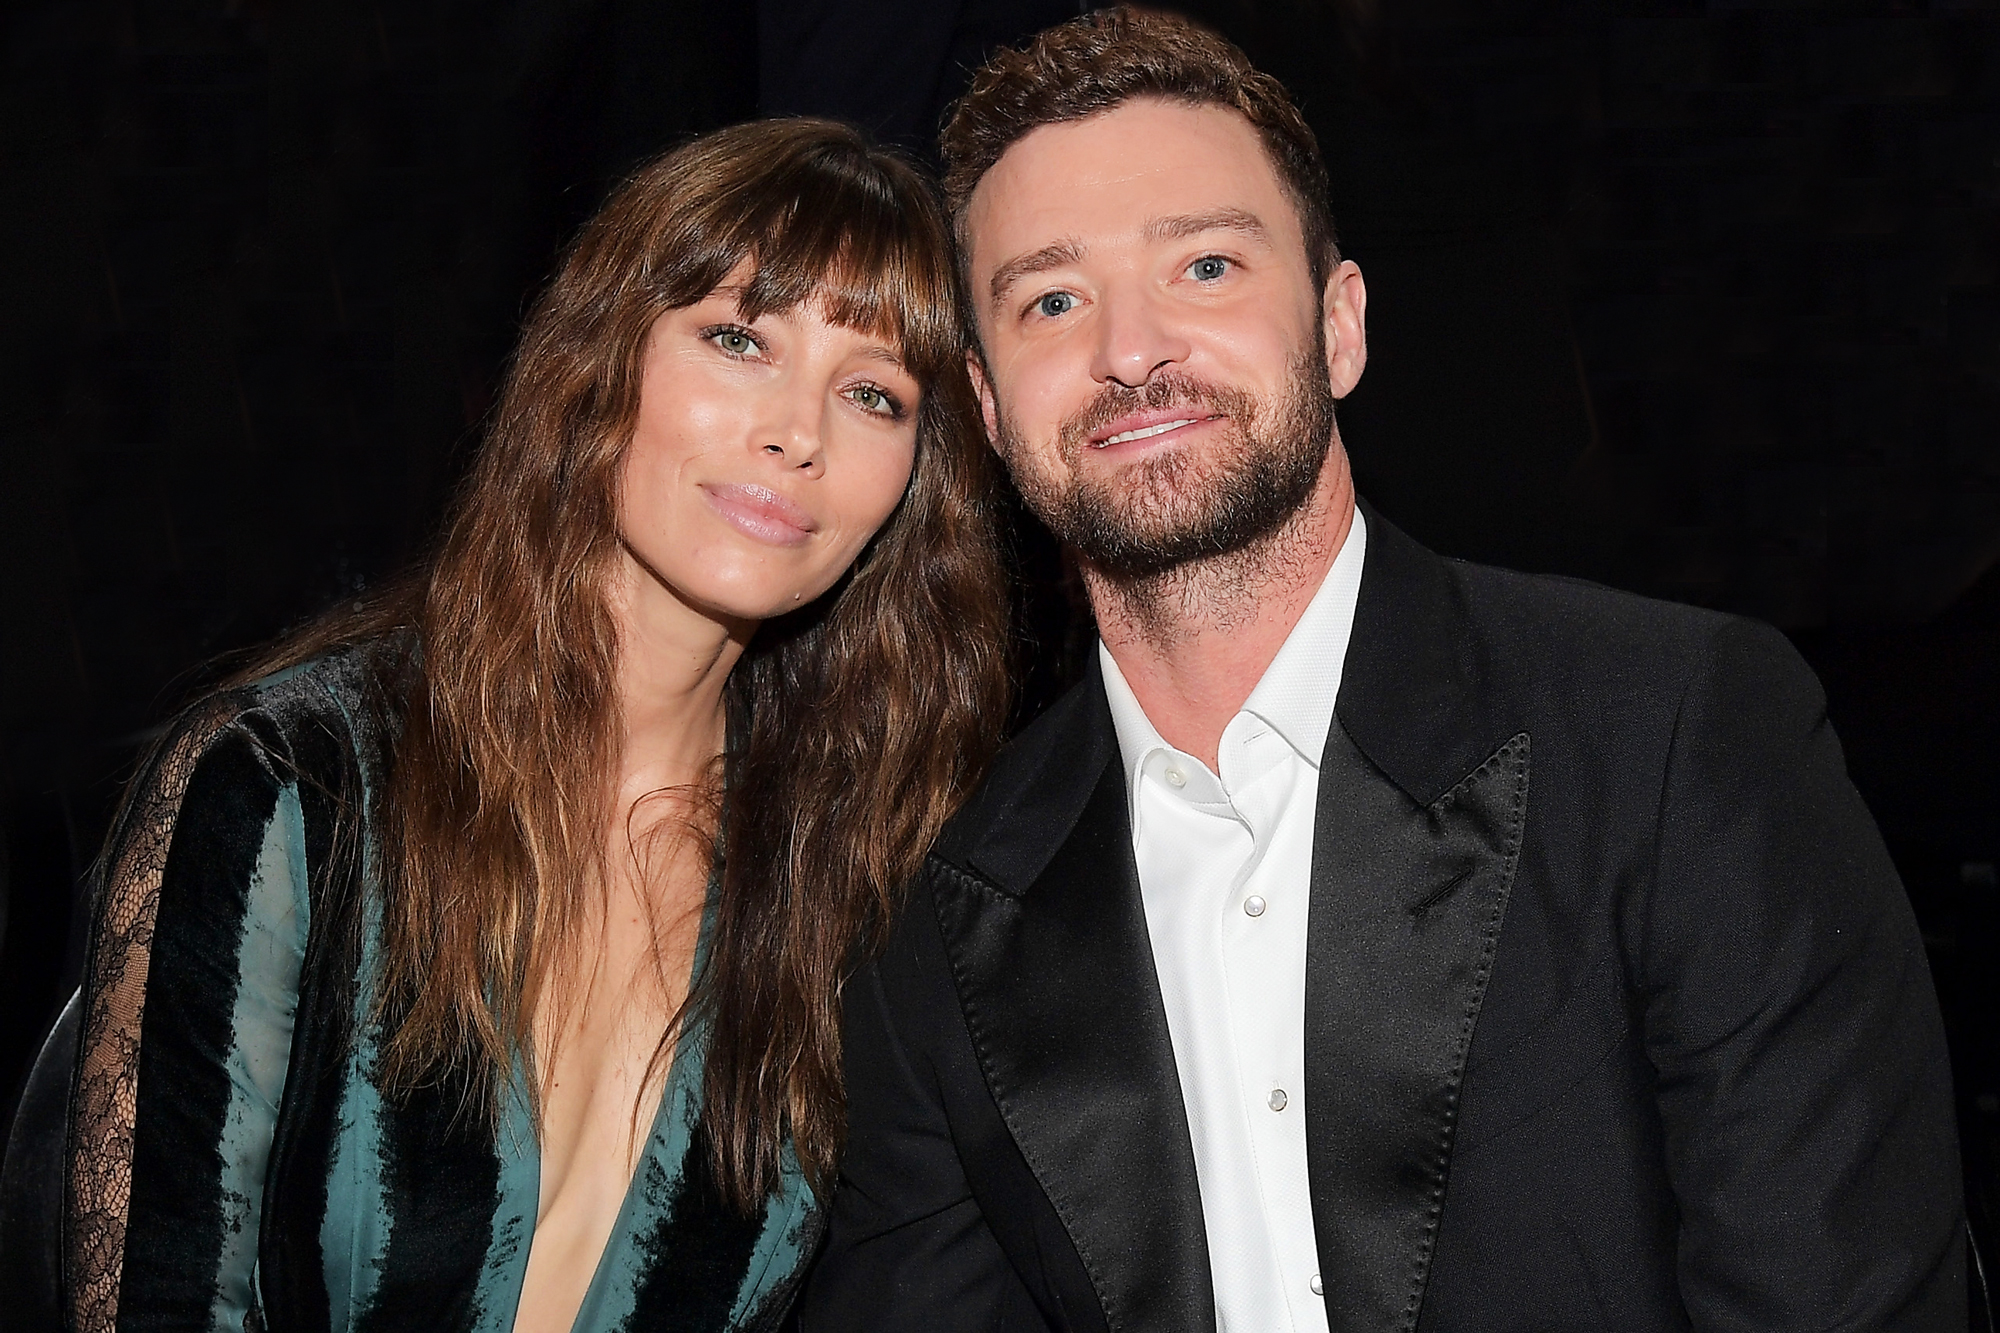 Justin Timberlake and Jessica Biel Step Out in Matchy Date Night Outfits